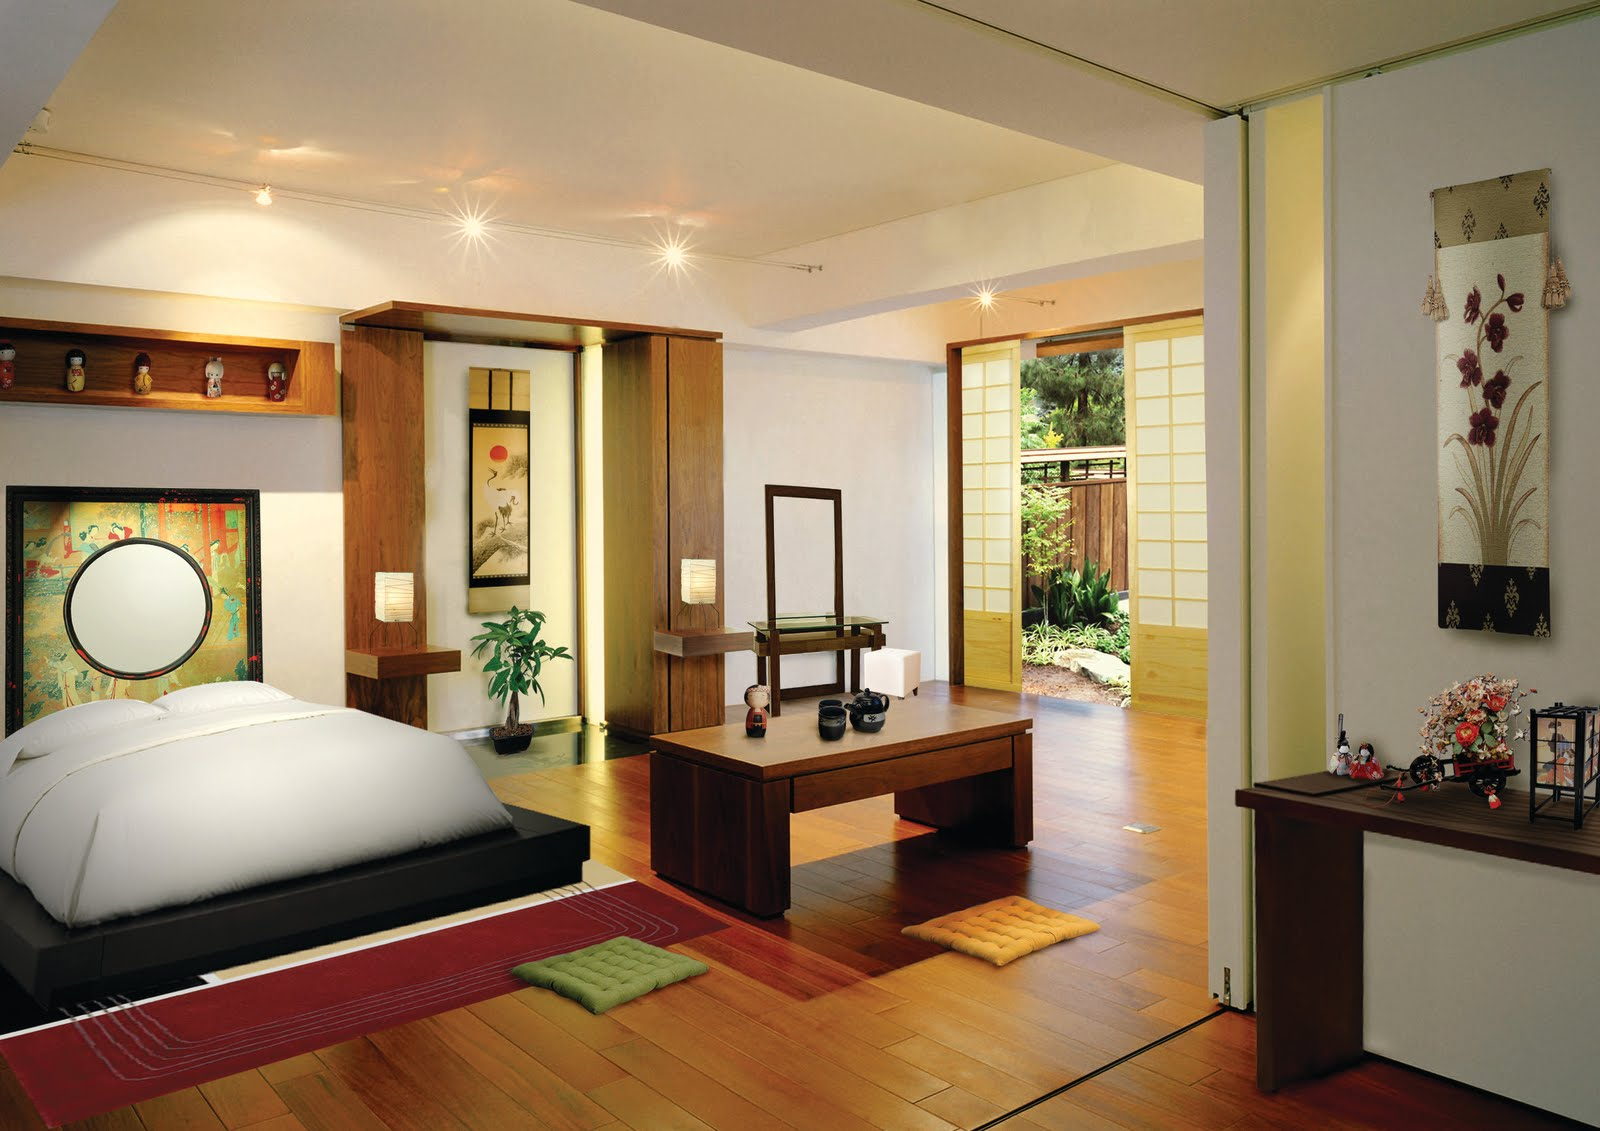 Melokumi japanese style bedroom design for Asian home decoration